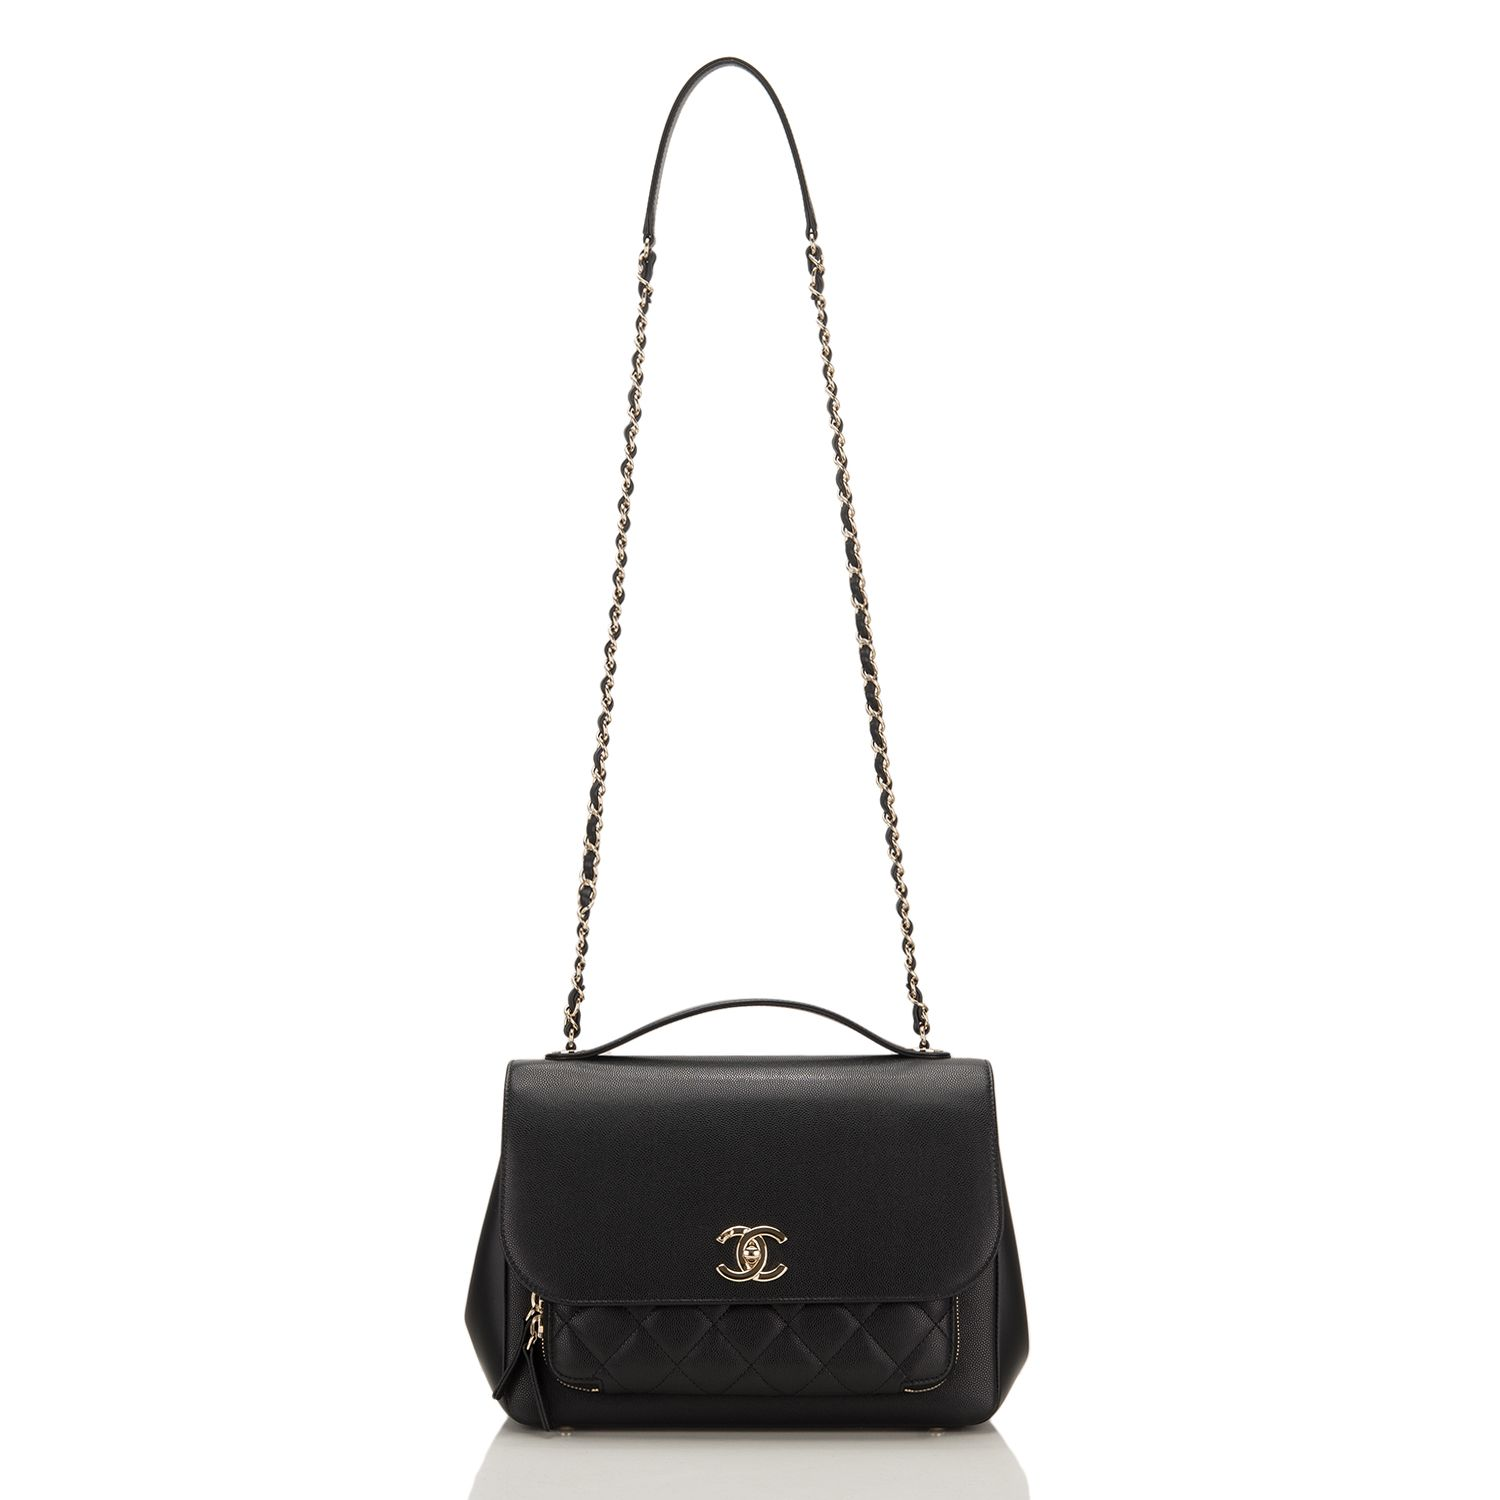 1929d93ae9ec Chanel Black Business Affinity Caviar Classic Flap Bag Image 1 ...